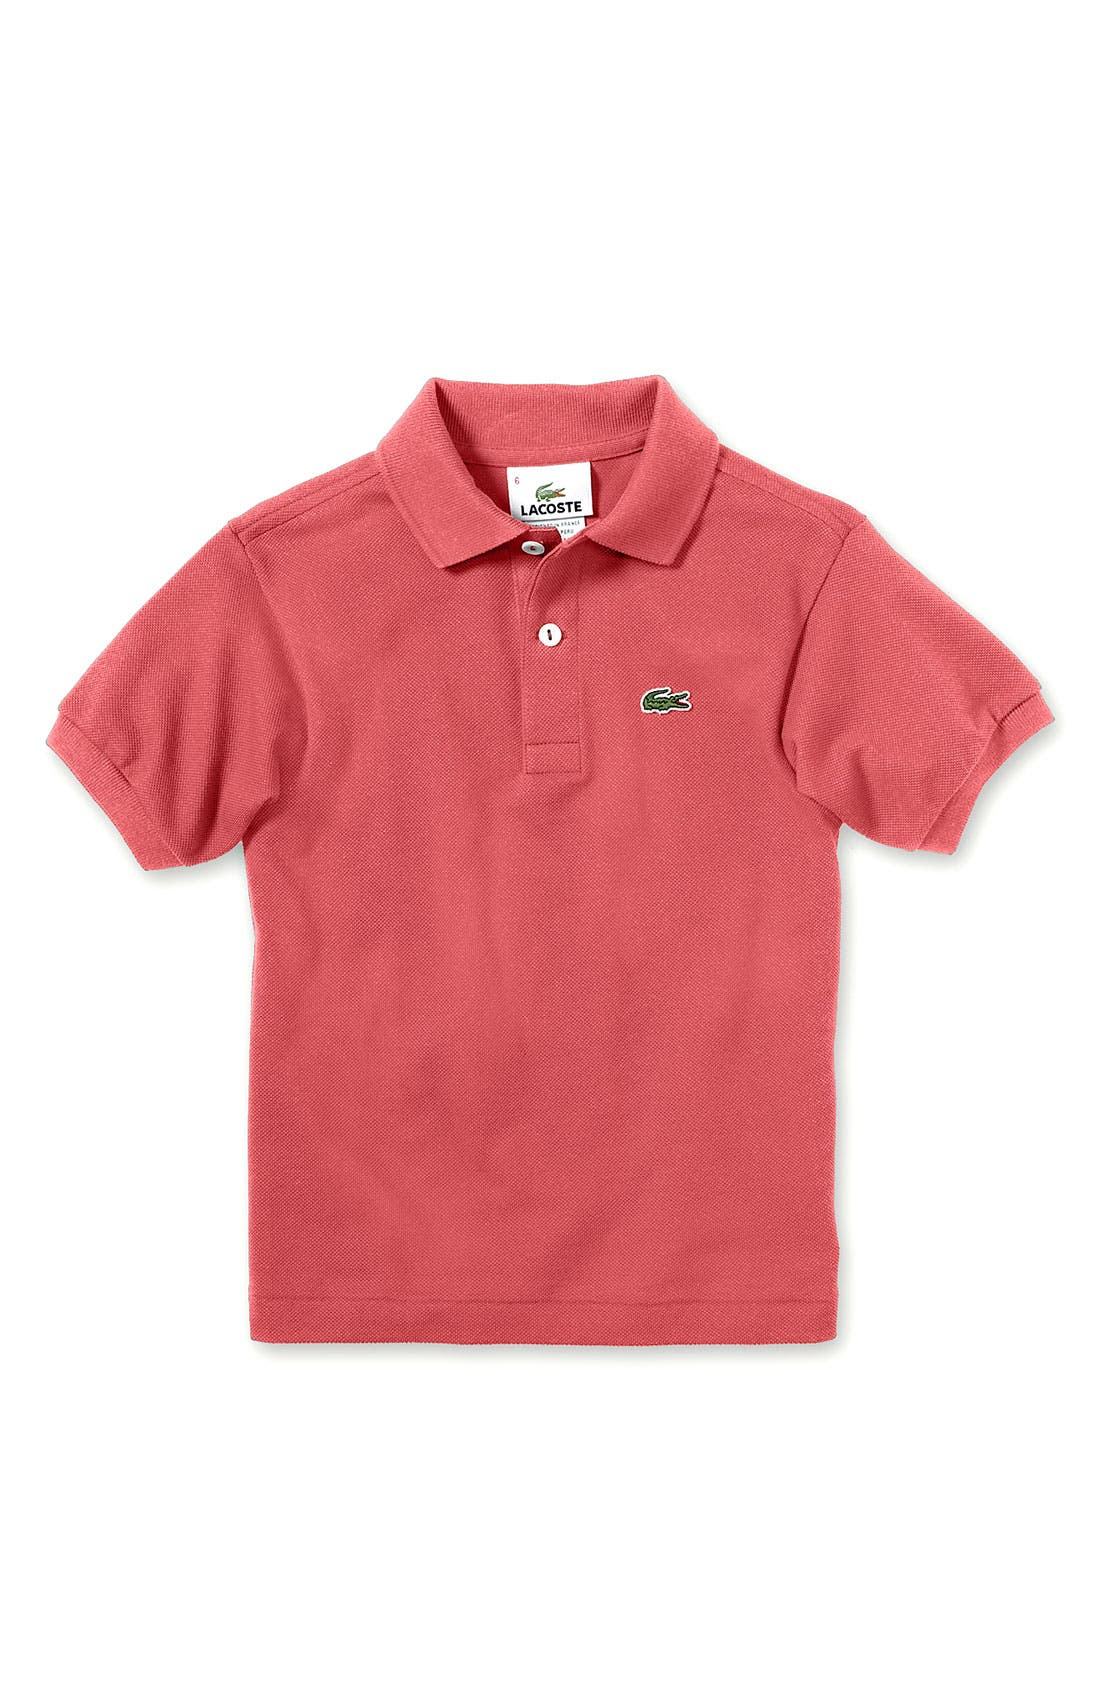 Main Image - Lacoste Short Sleeve Piqué Polo (Little Boys & Big Boys)